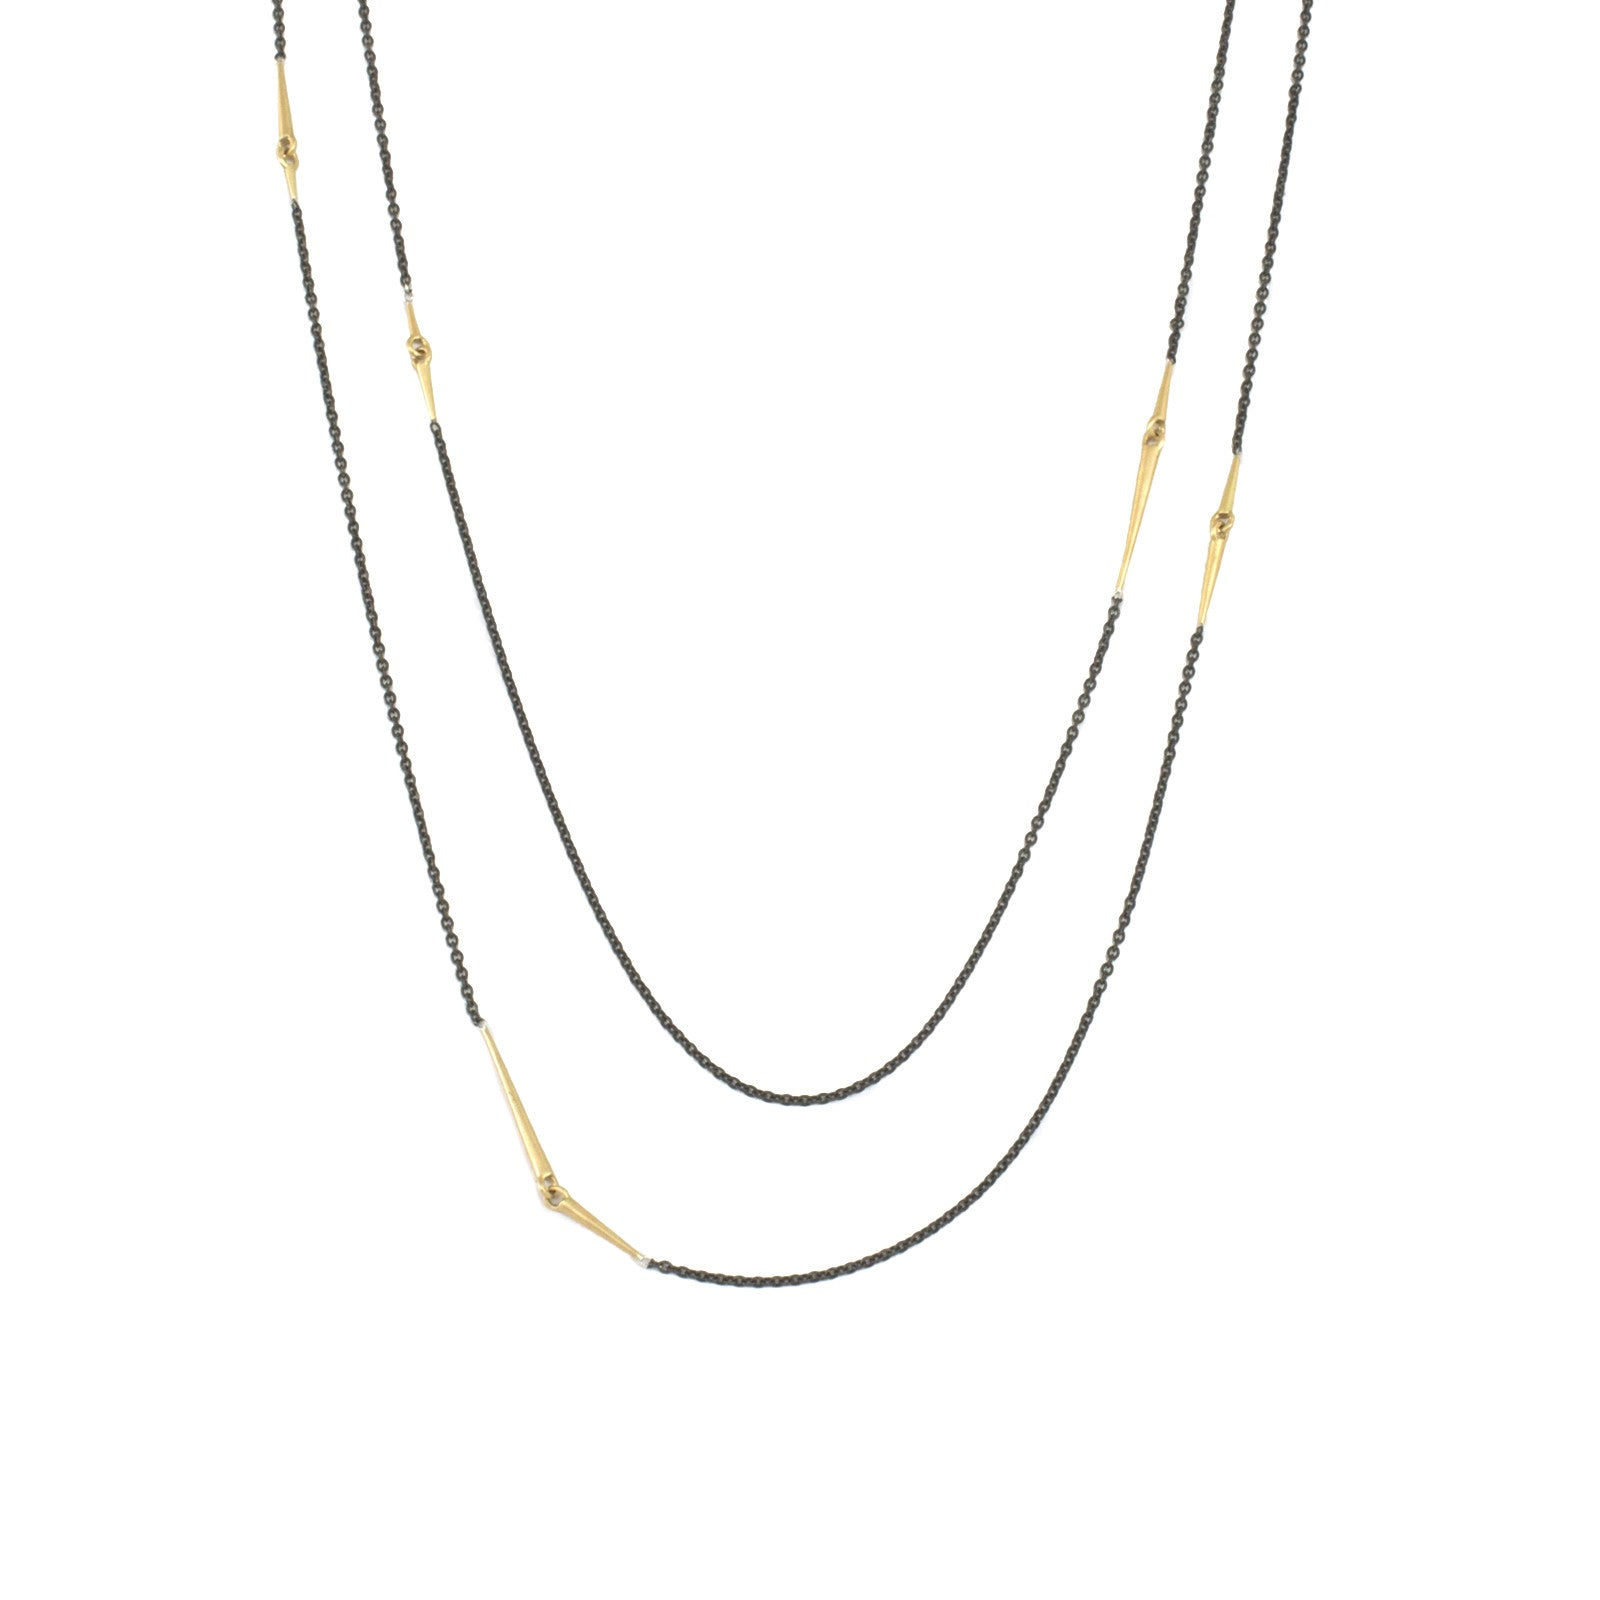 18k yellow gold/oxidized silver chain long mirrored points necklace